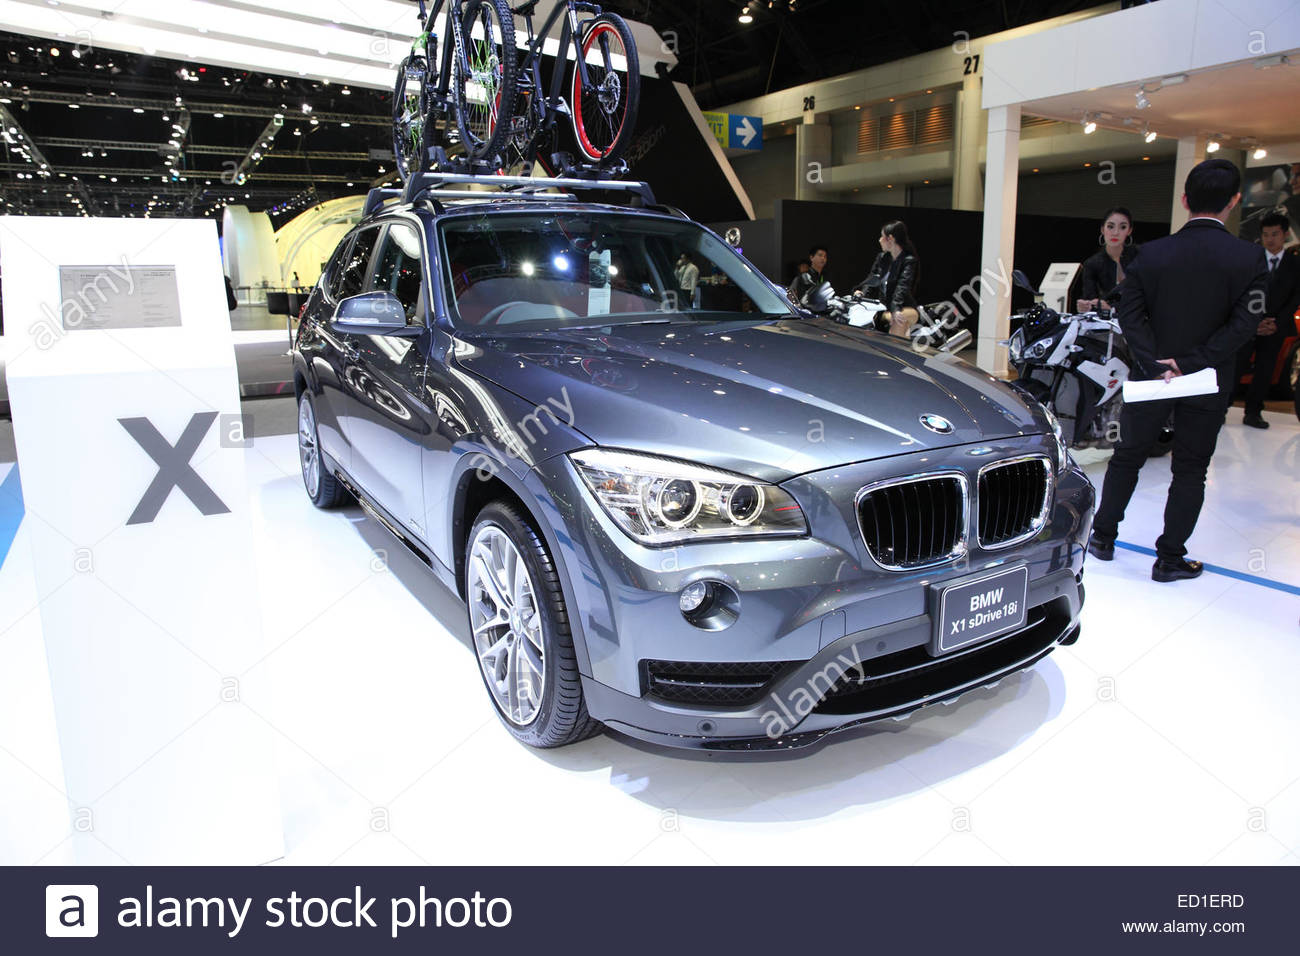 bmw x1 stock photos bmw x1 stock images alamy. Black Bedroom Furniture Sets. Home Design Ideas